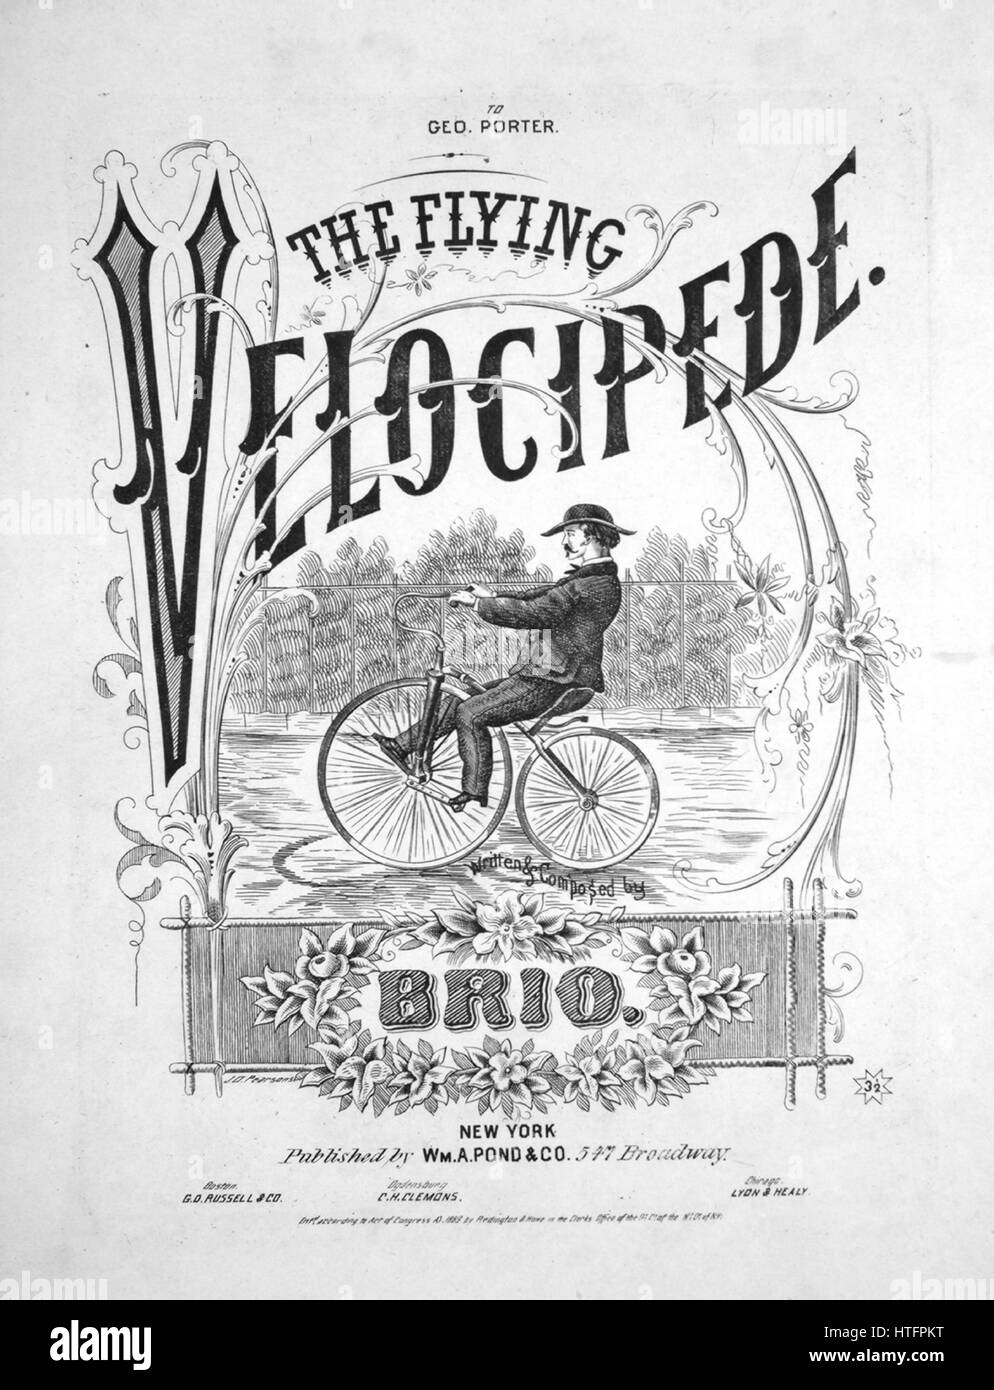 Sheet music cover image of the song \'The Flying Velocipede\', with ...